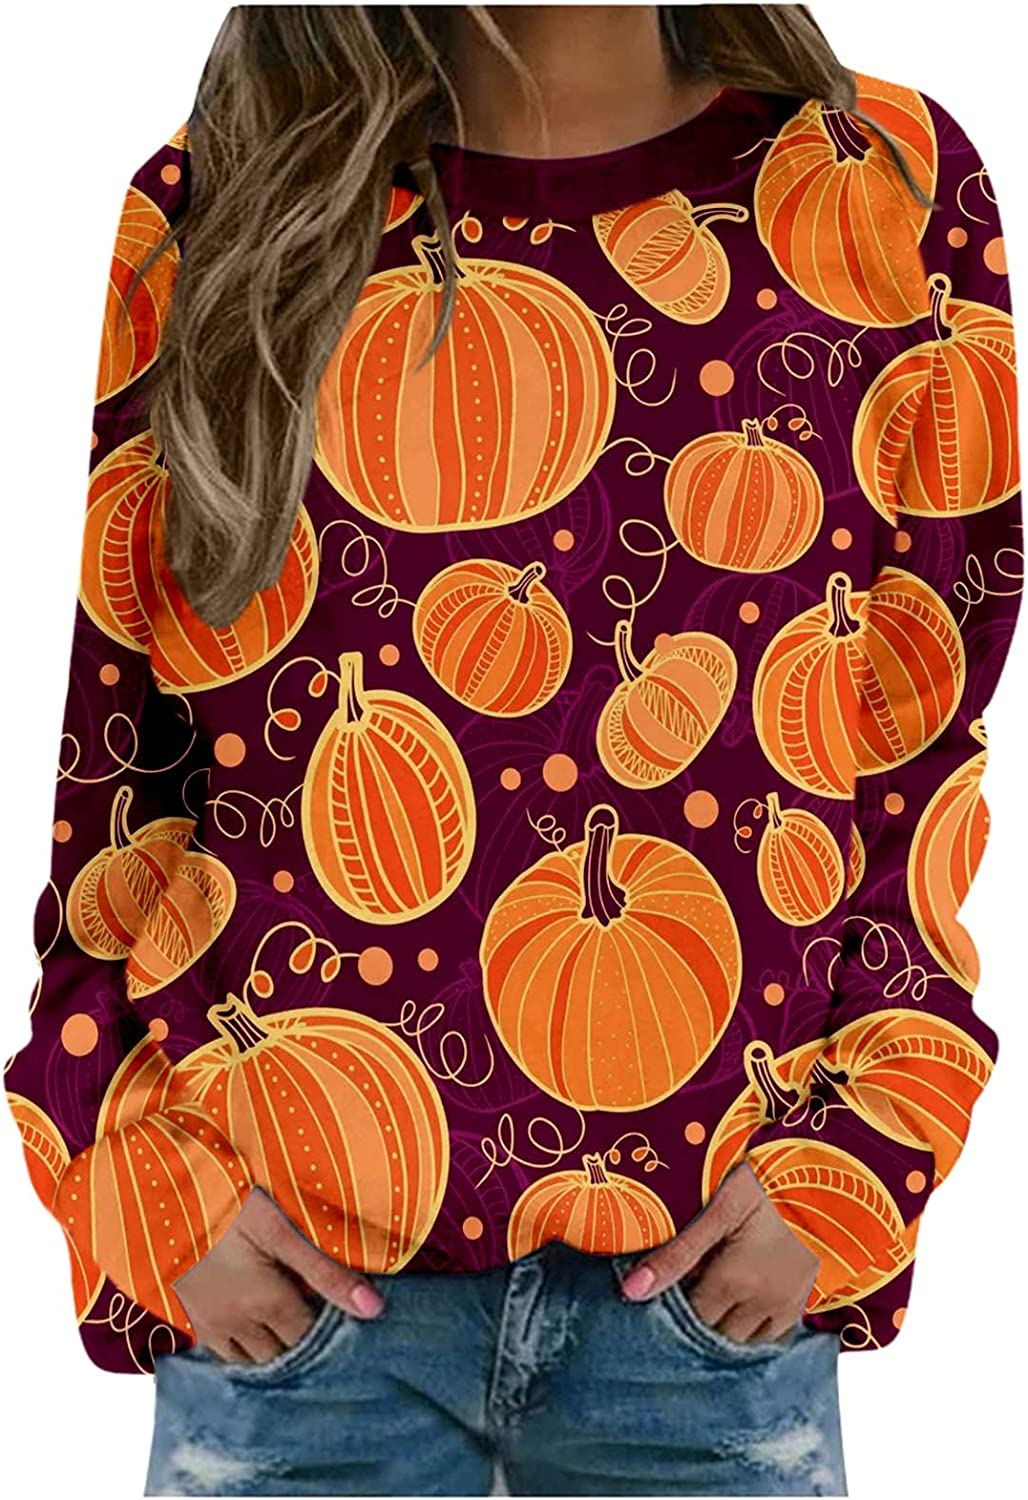 AODONG Halloween Sweatshirts for Women,Womens Funny Pumpkin Costumes Pullover Tops Casual Long Sleeve Sweater Blouse